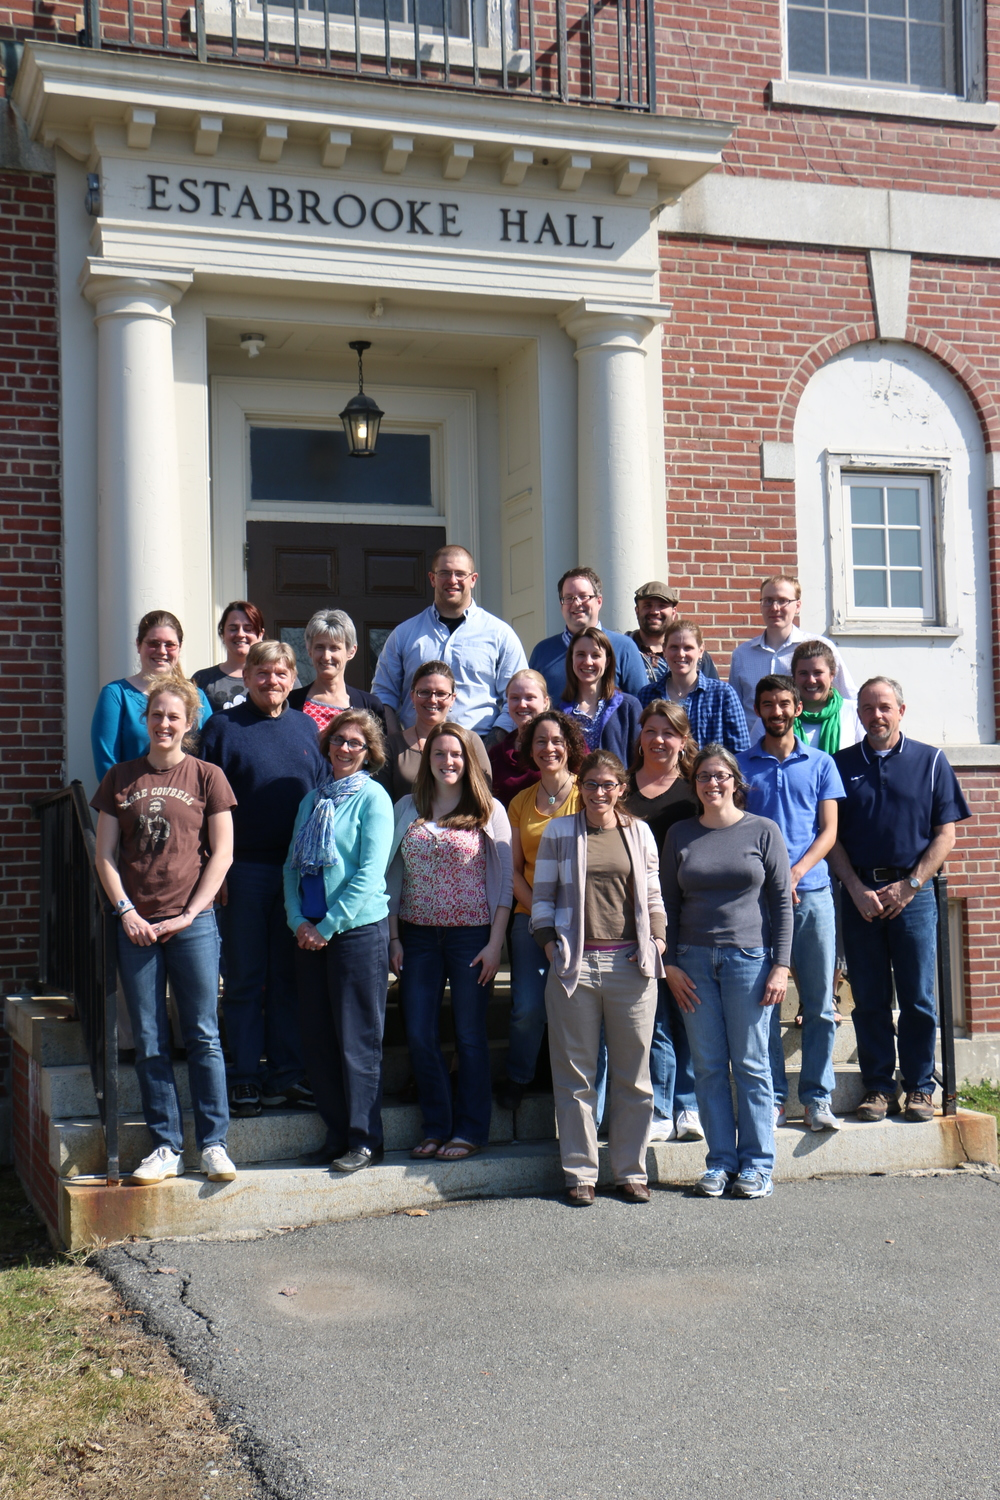 Teachers with the Spring 2015 University Course Observation Program in front of Estabrooke Hall at the University of Maine, Orono.